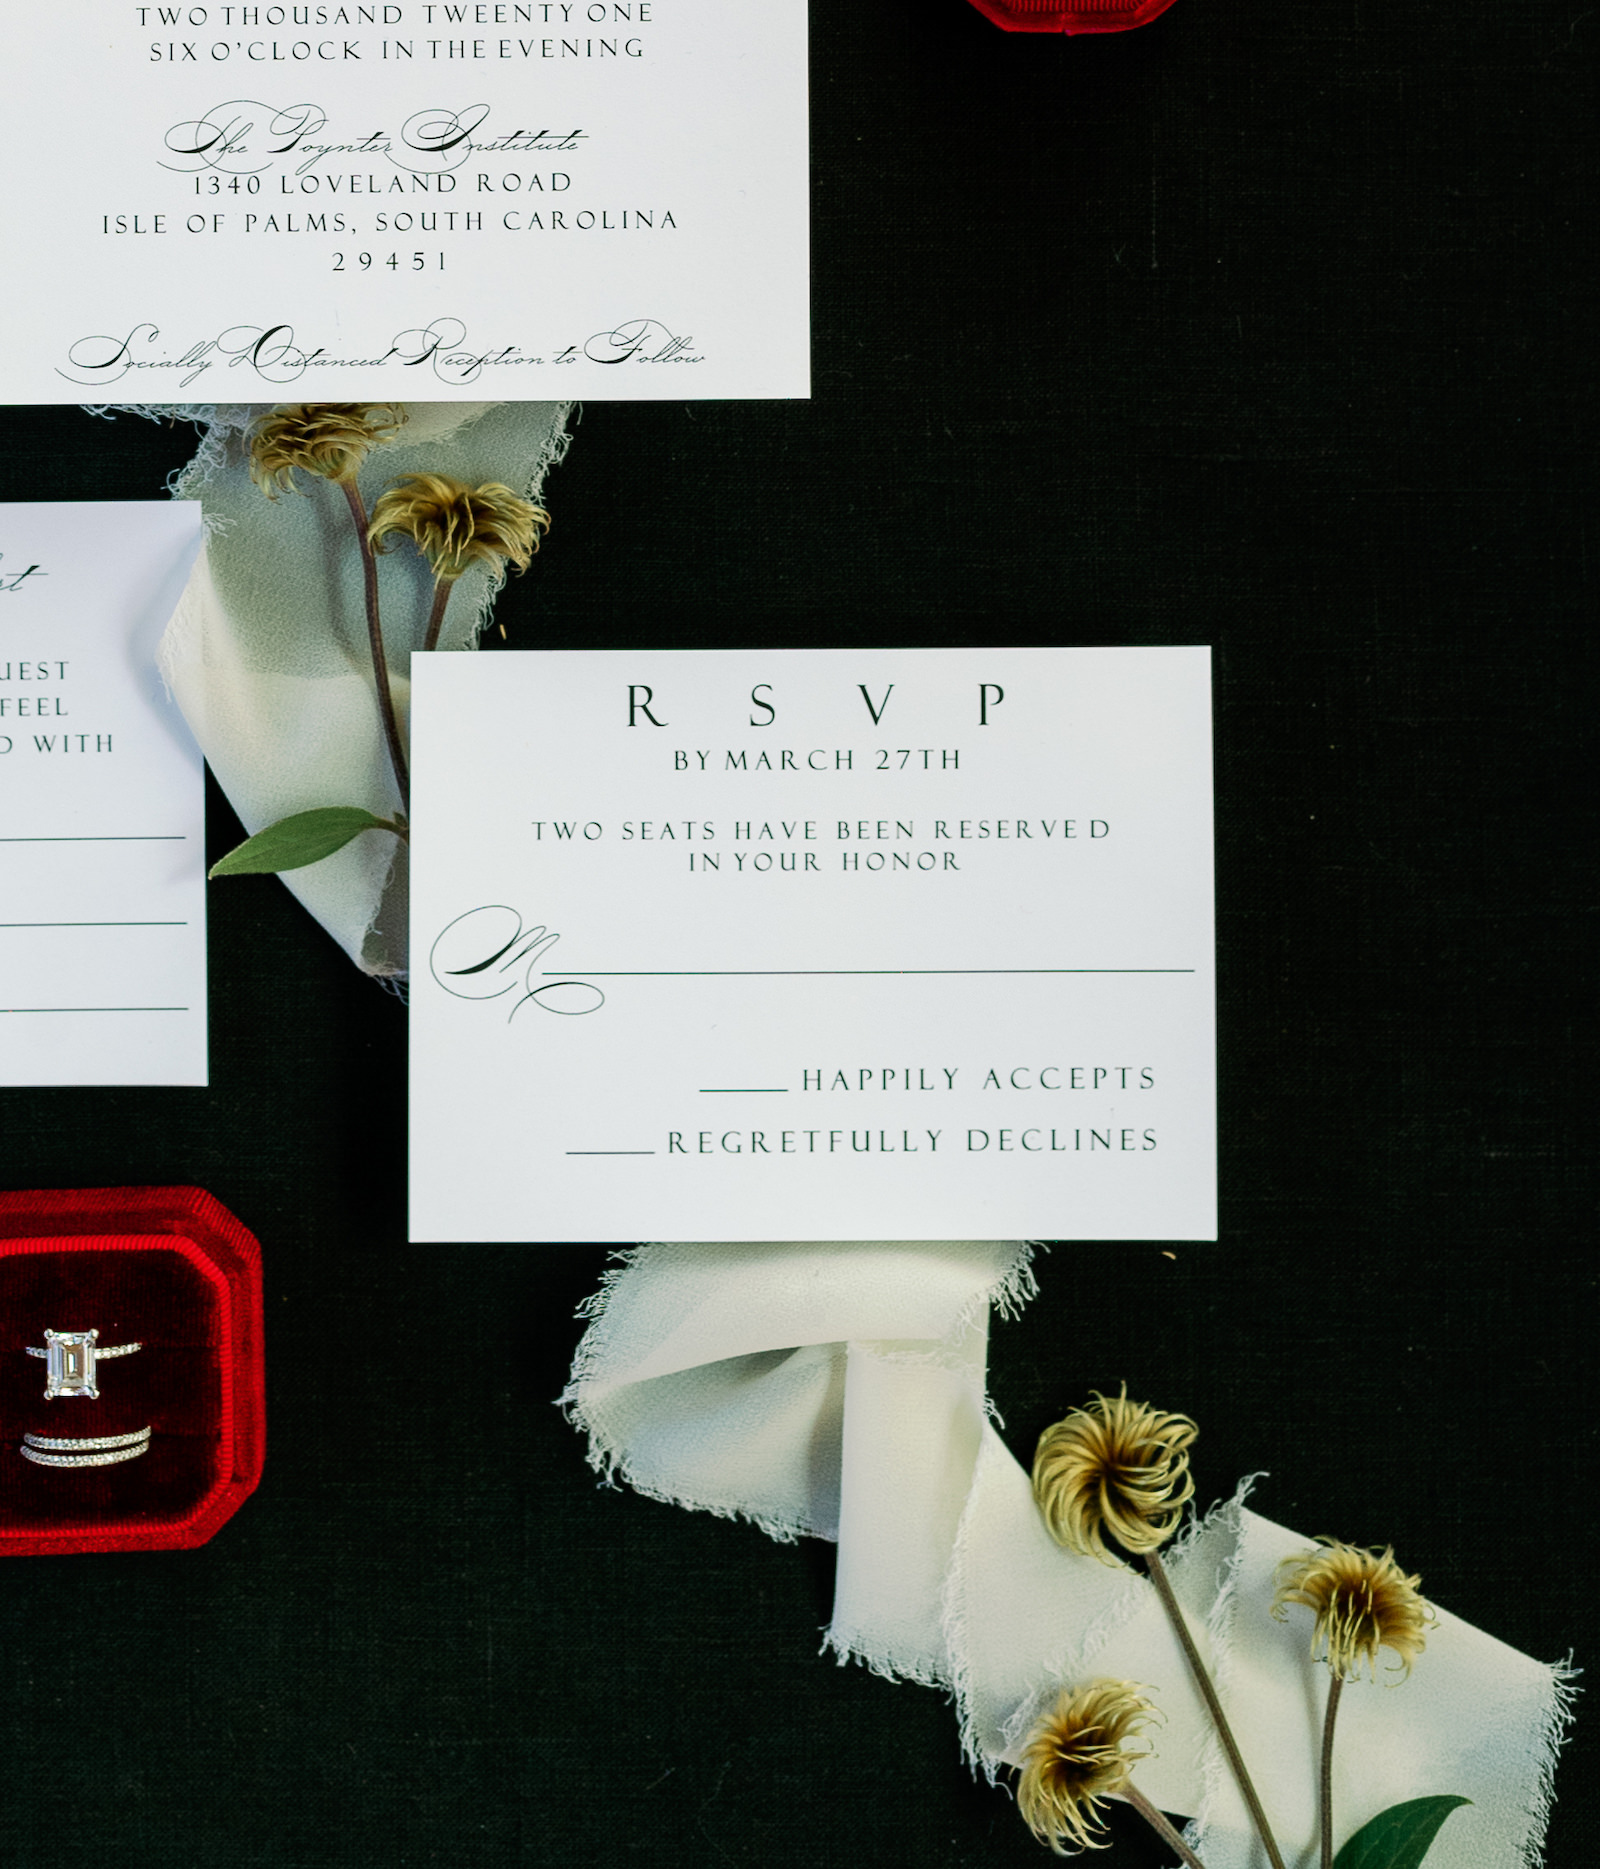 St. Pete COVID Wedding Stationery Flat Lay Invitation Suite with Social Distancing Response Card   Black and White Wedding Invitation with Red Envelope and Red Velvet Ring Box